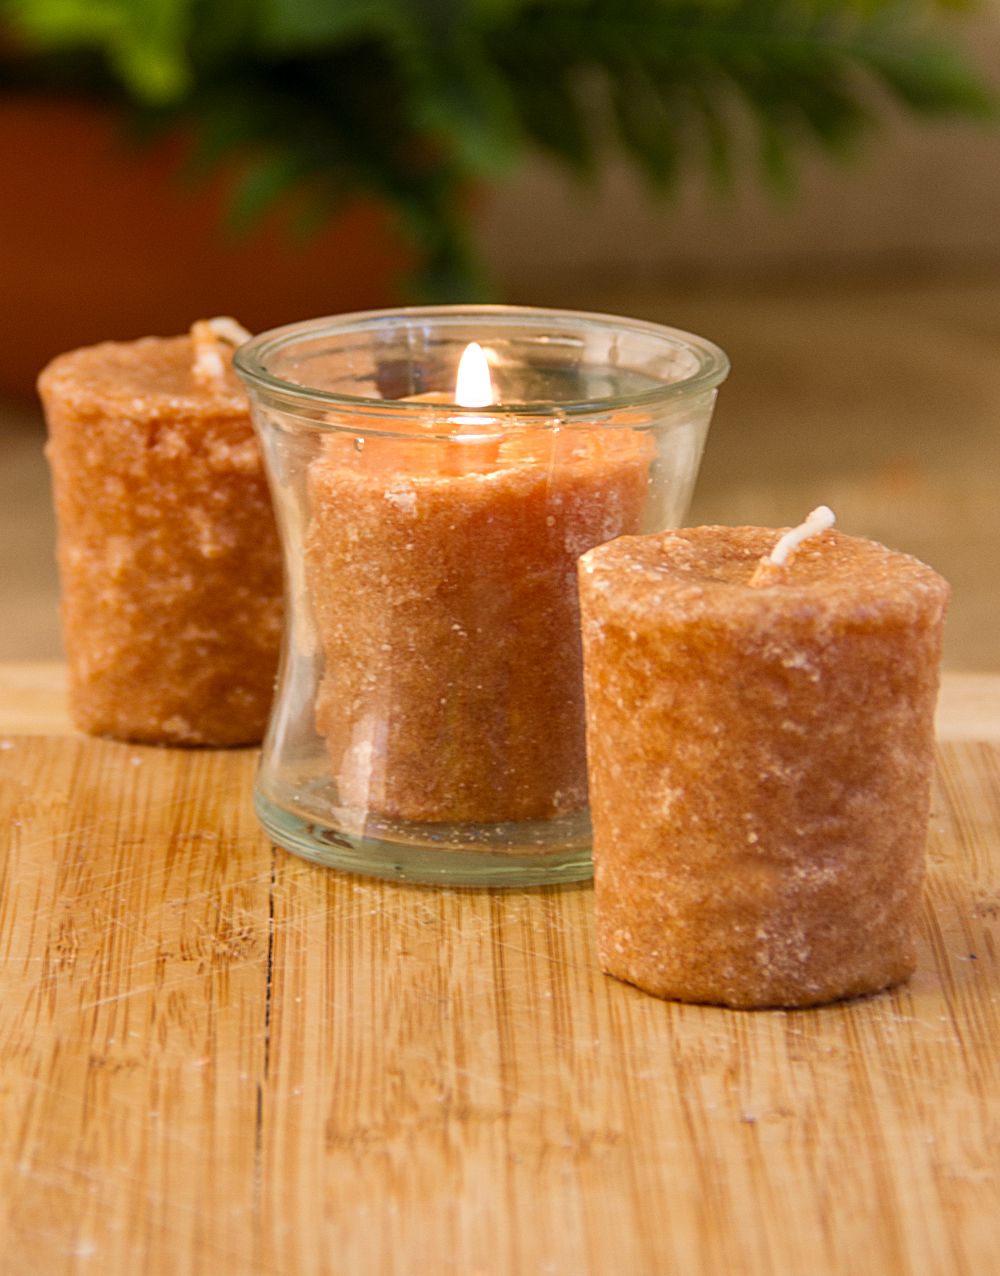 Oatmeal Raisin Cookie 3 Pack Votive Candles